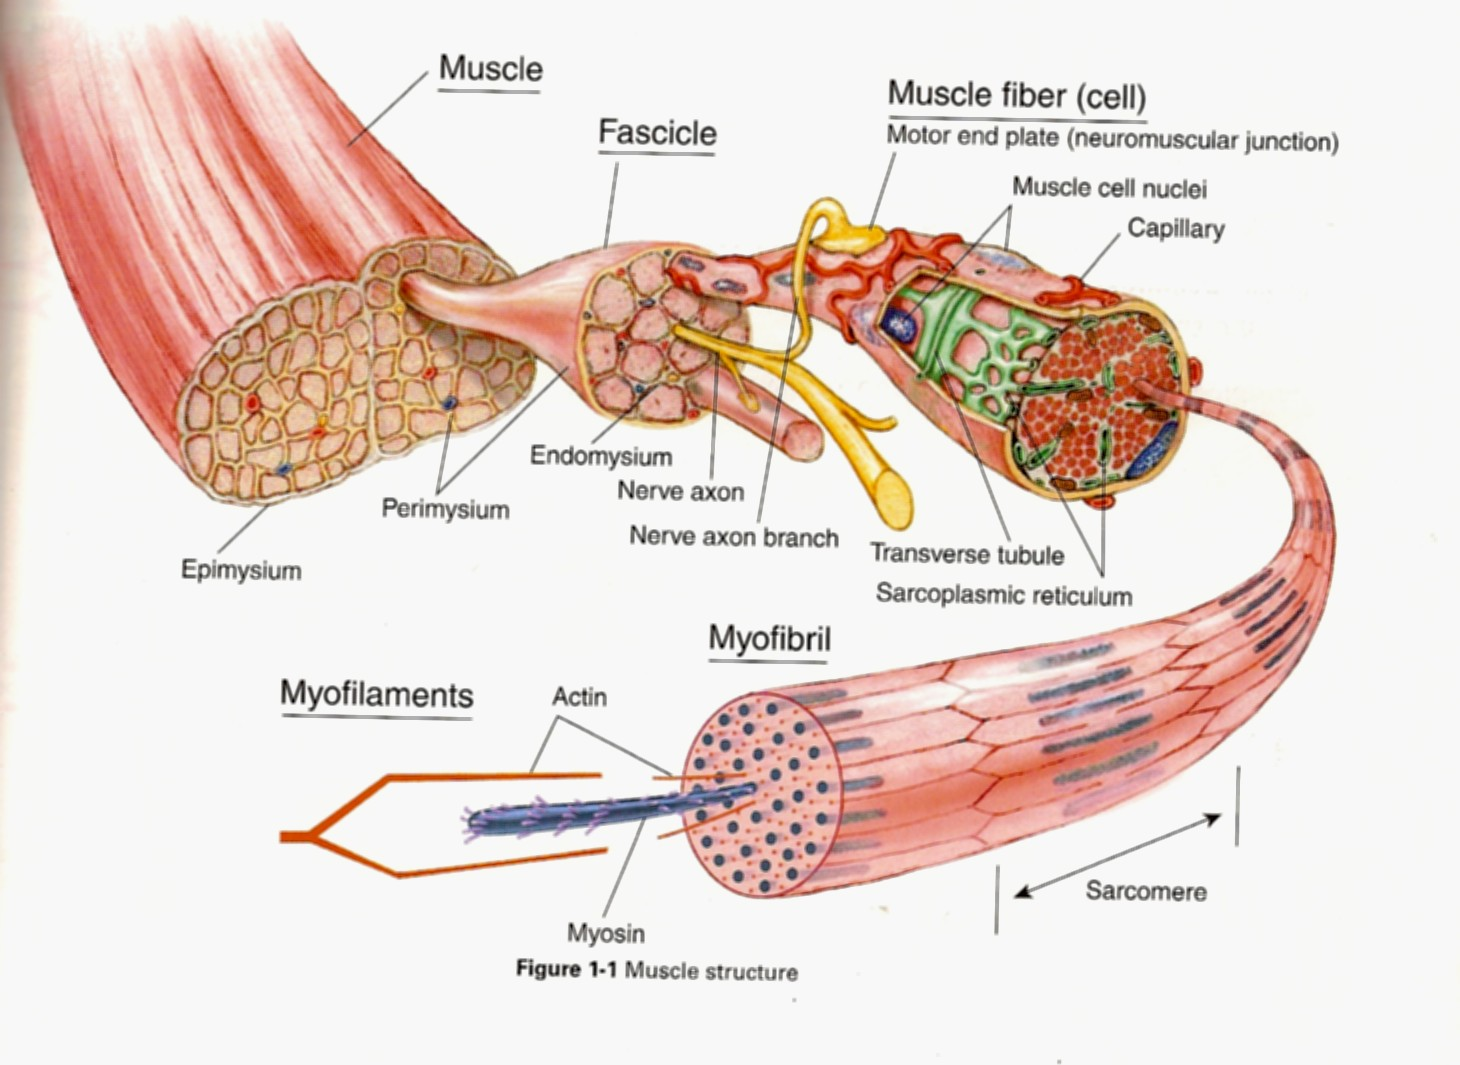 More Facts About Massage & the Structure of a Muscle!